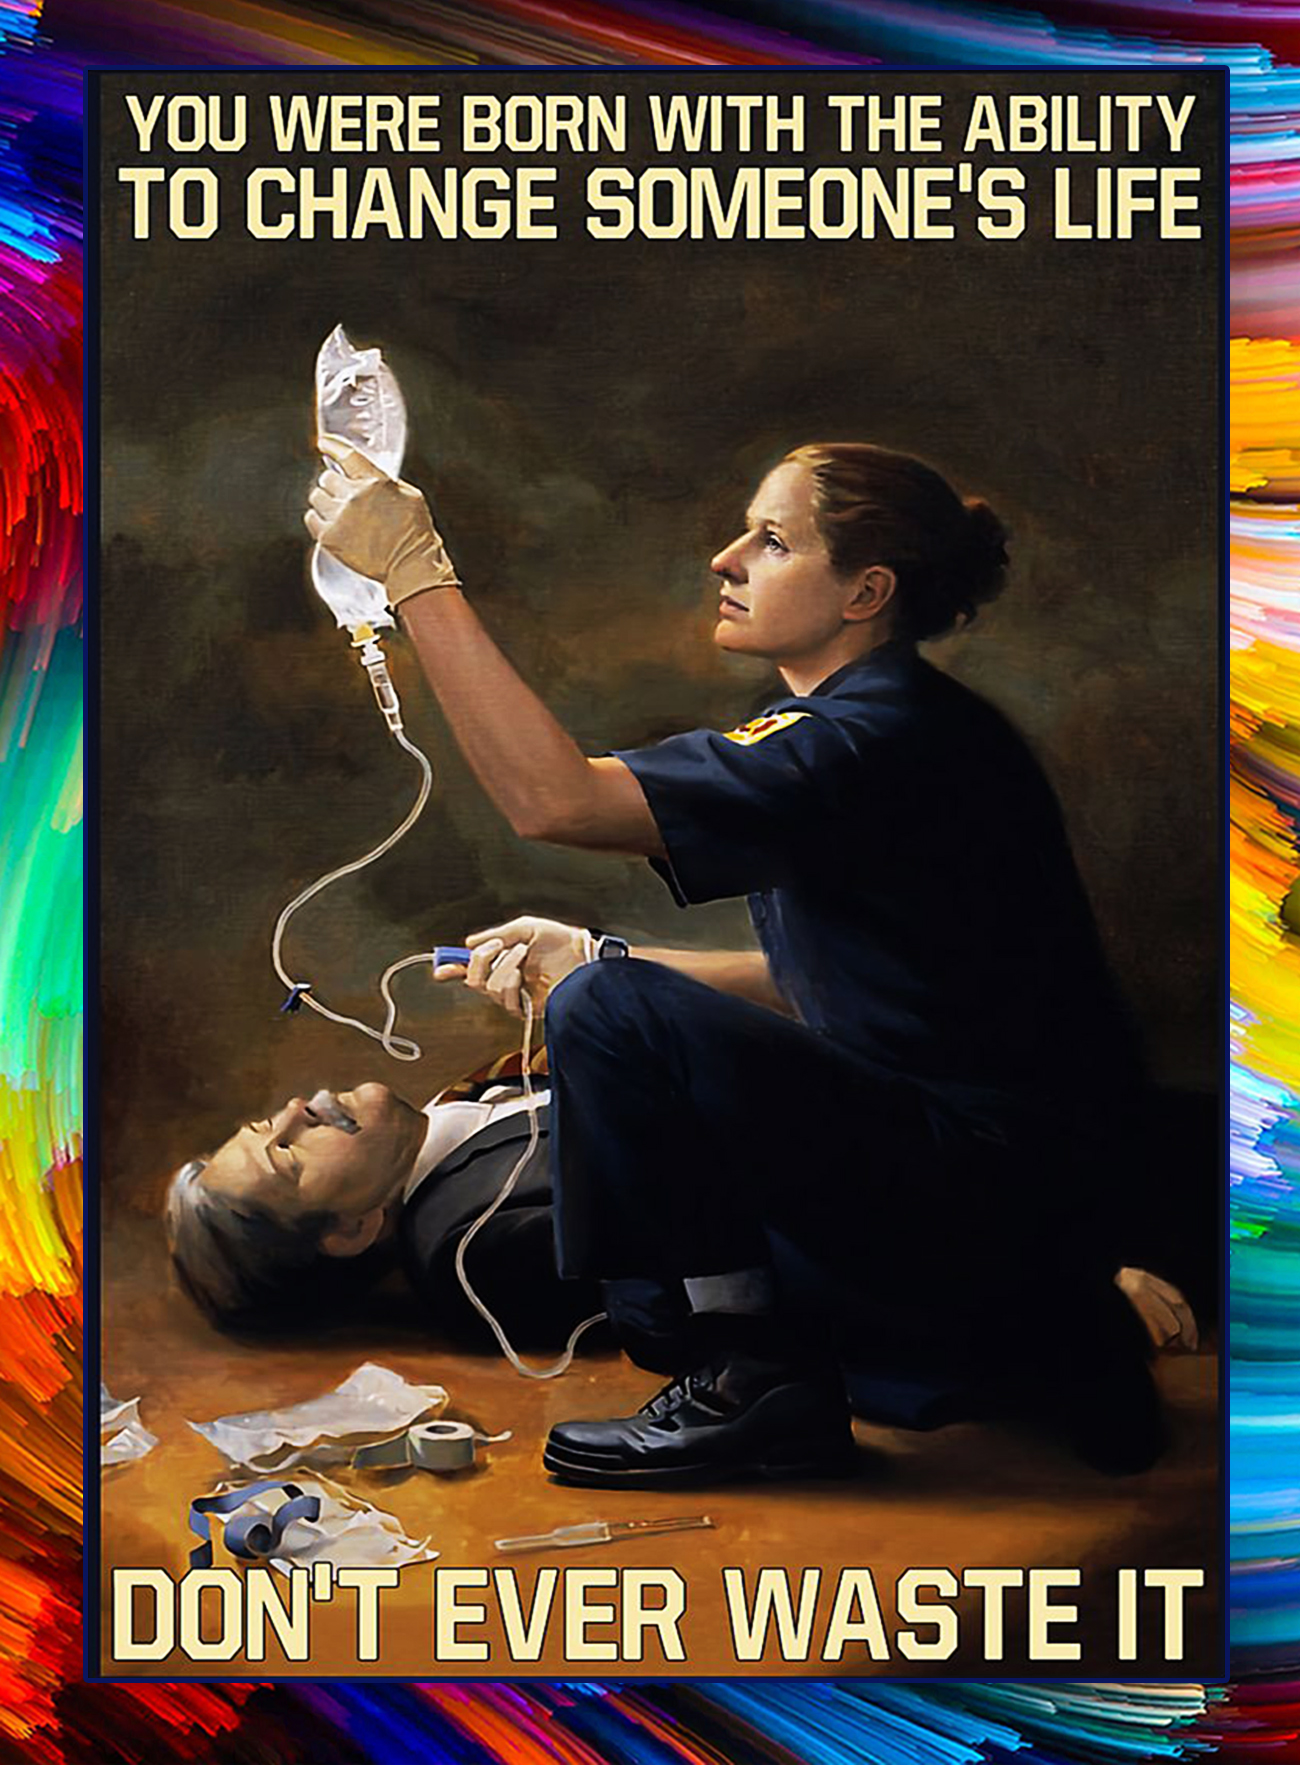 Paramedic You were born with the ability to change someone's life don't ever waste it poster